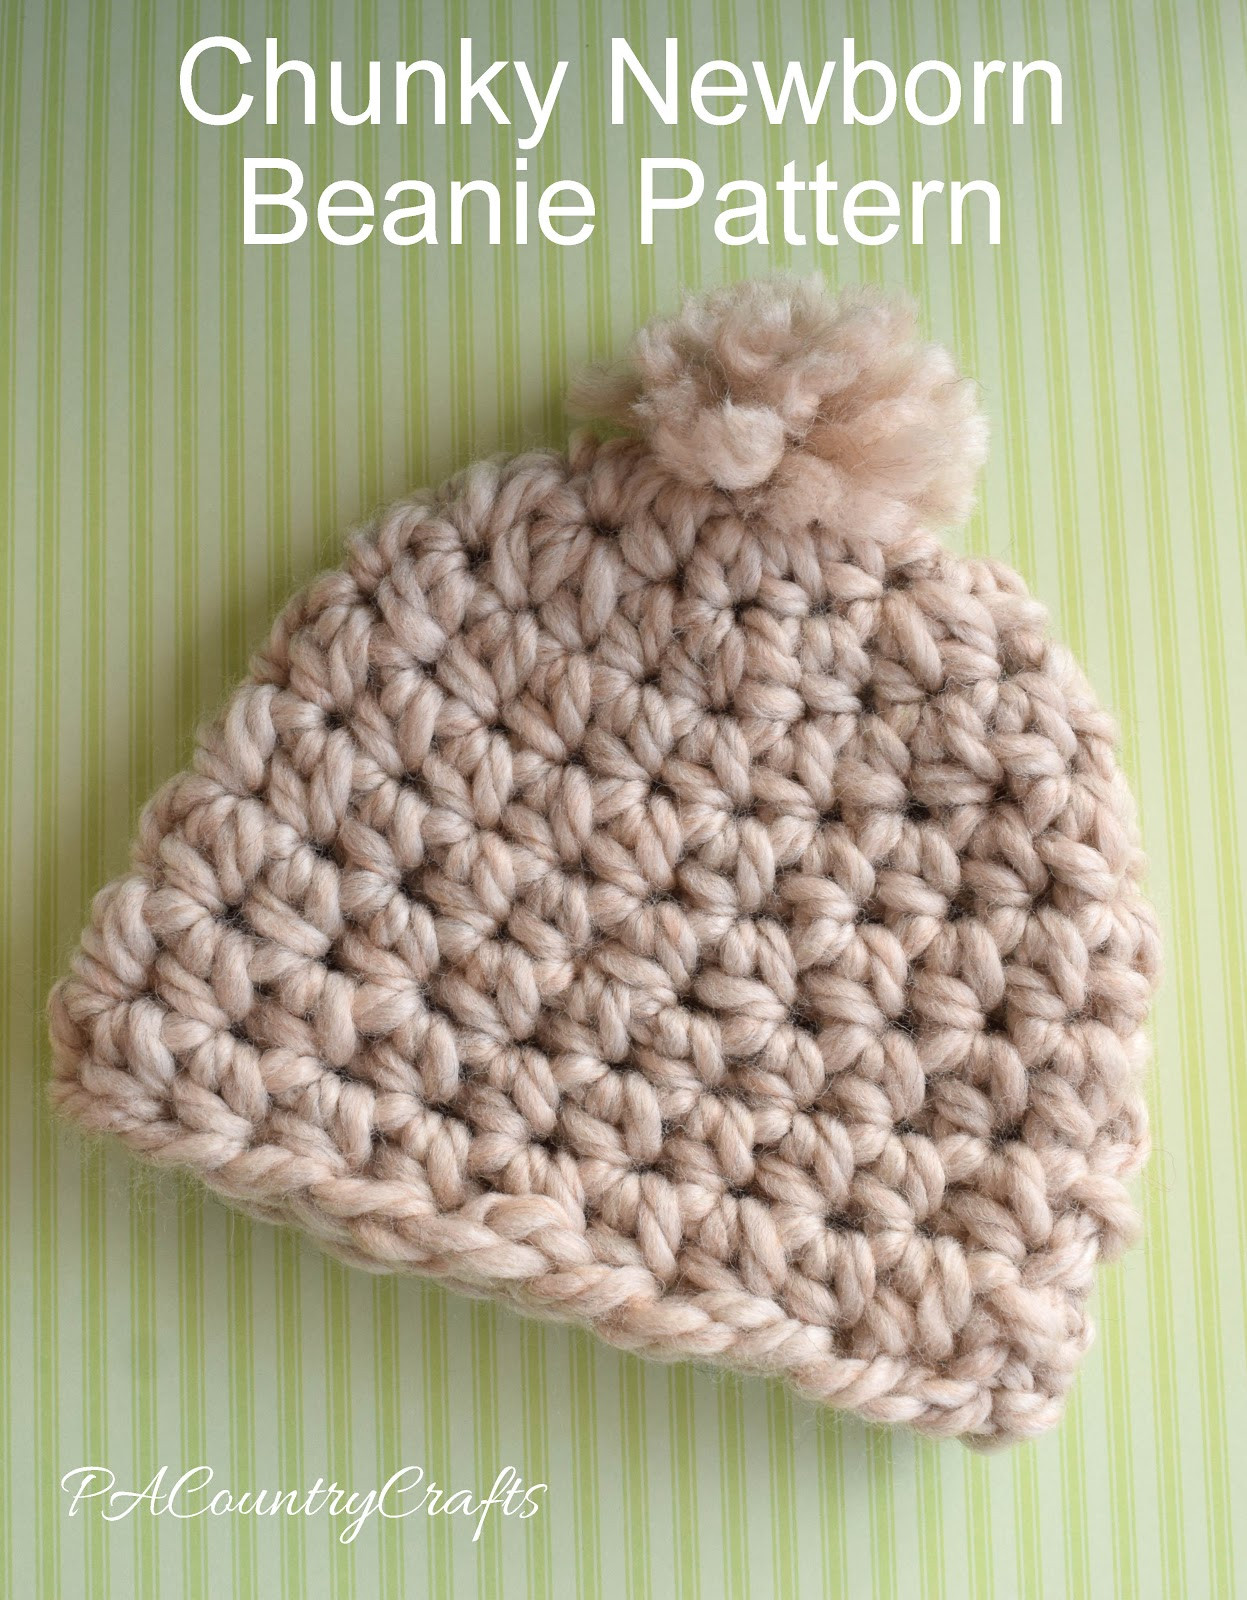 Awesome Chunky Newborn Beanie Pattern Chunky Crochet Beanie Pattern Of Elegant Chunky Knit Hat Pattern Roundup 12 Quick & Cozy Patterns Chunky Crochet Beanie Pattern